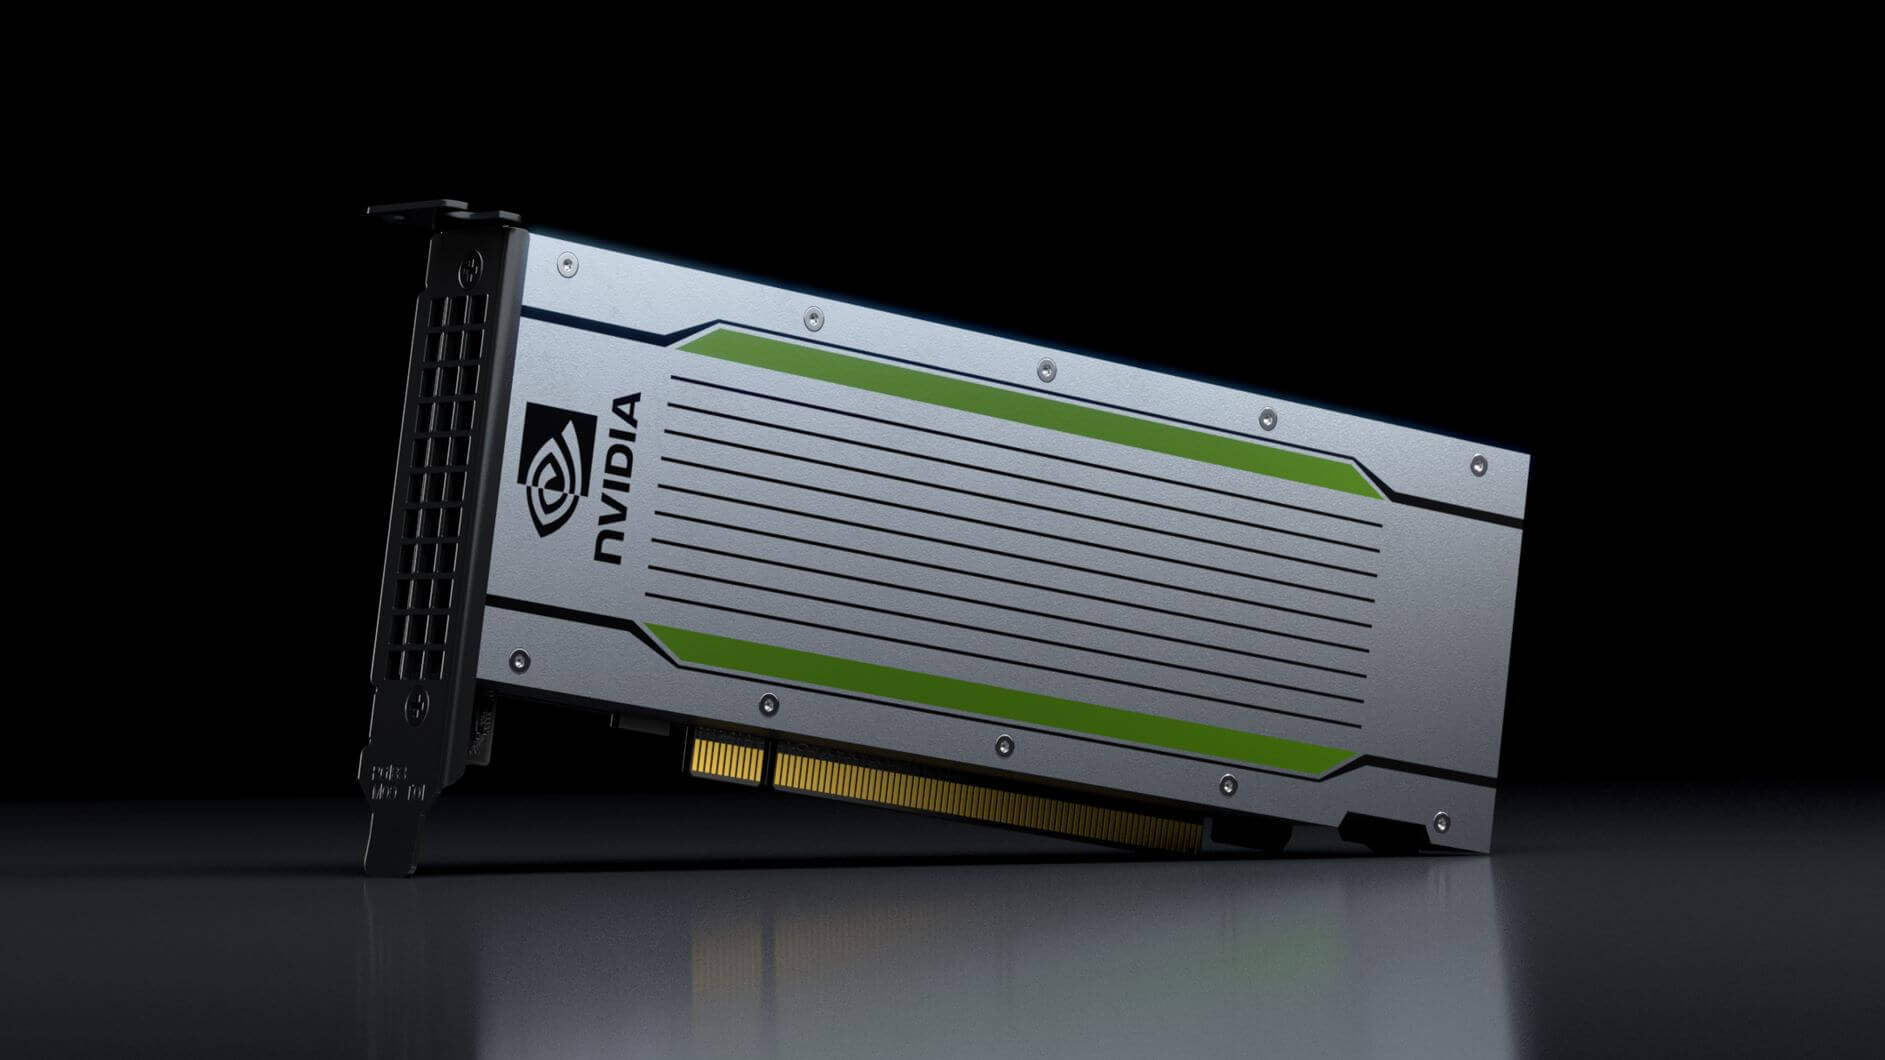 Nvidia Tesla T4 GPU accelerates AI inferences without becoming power-hungry